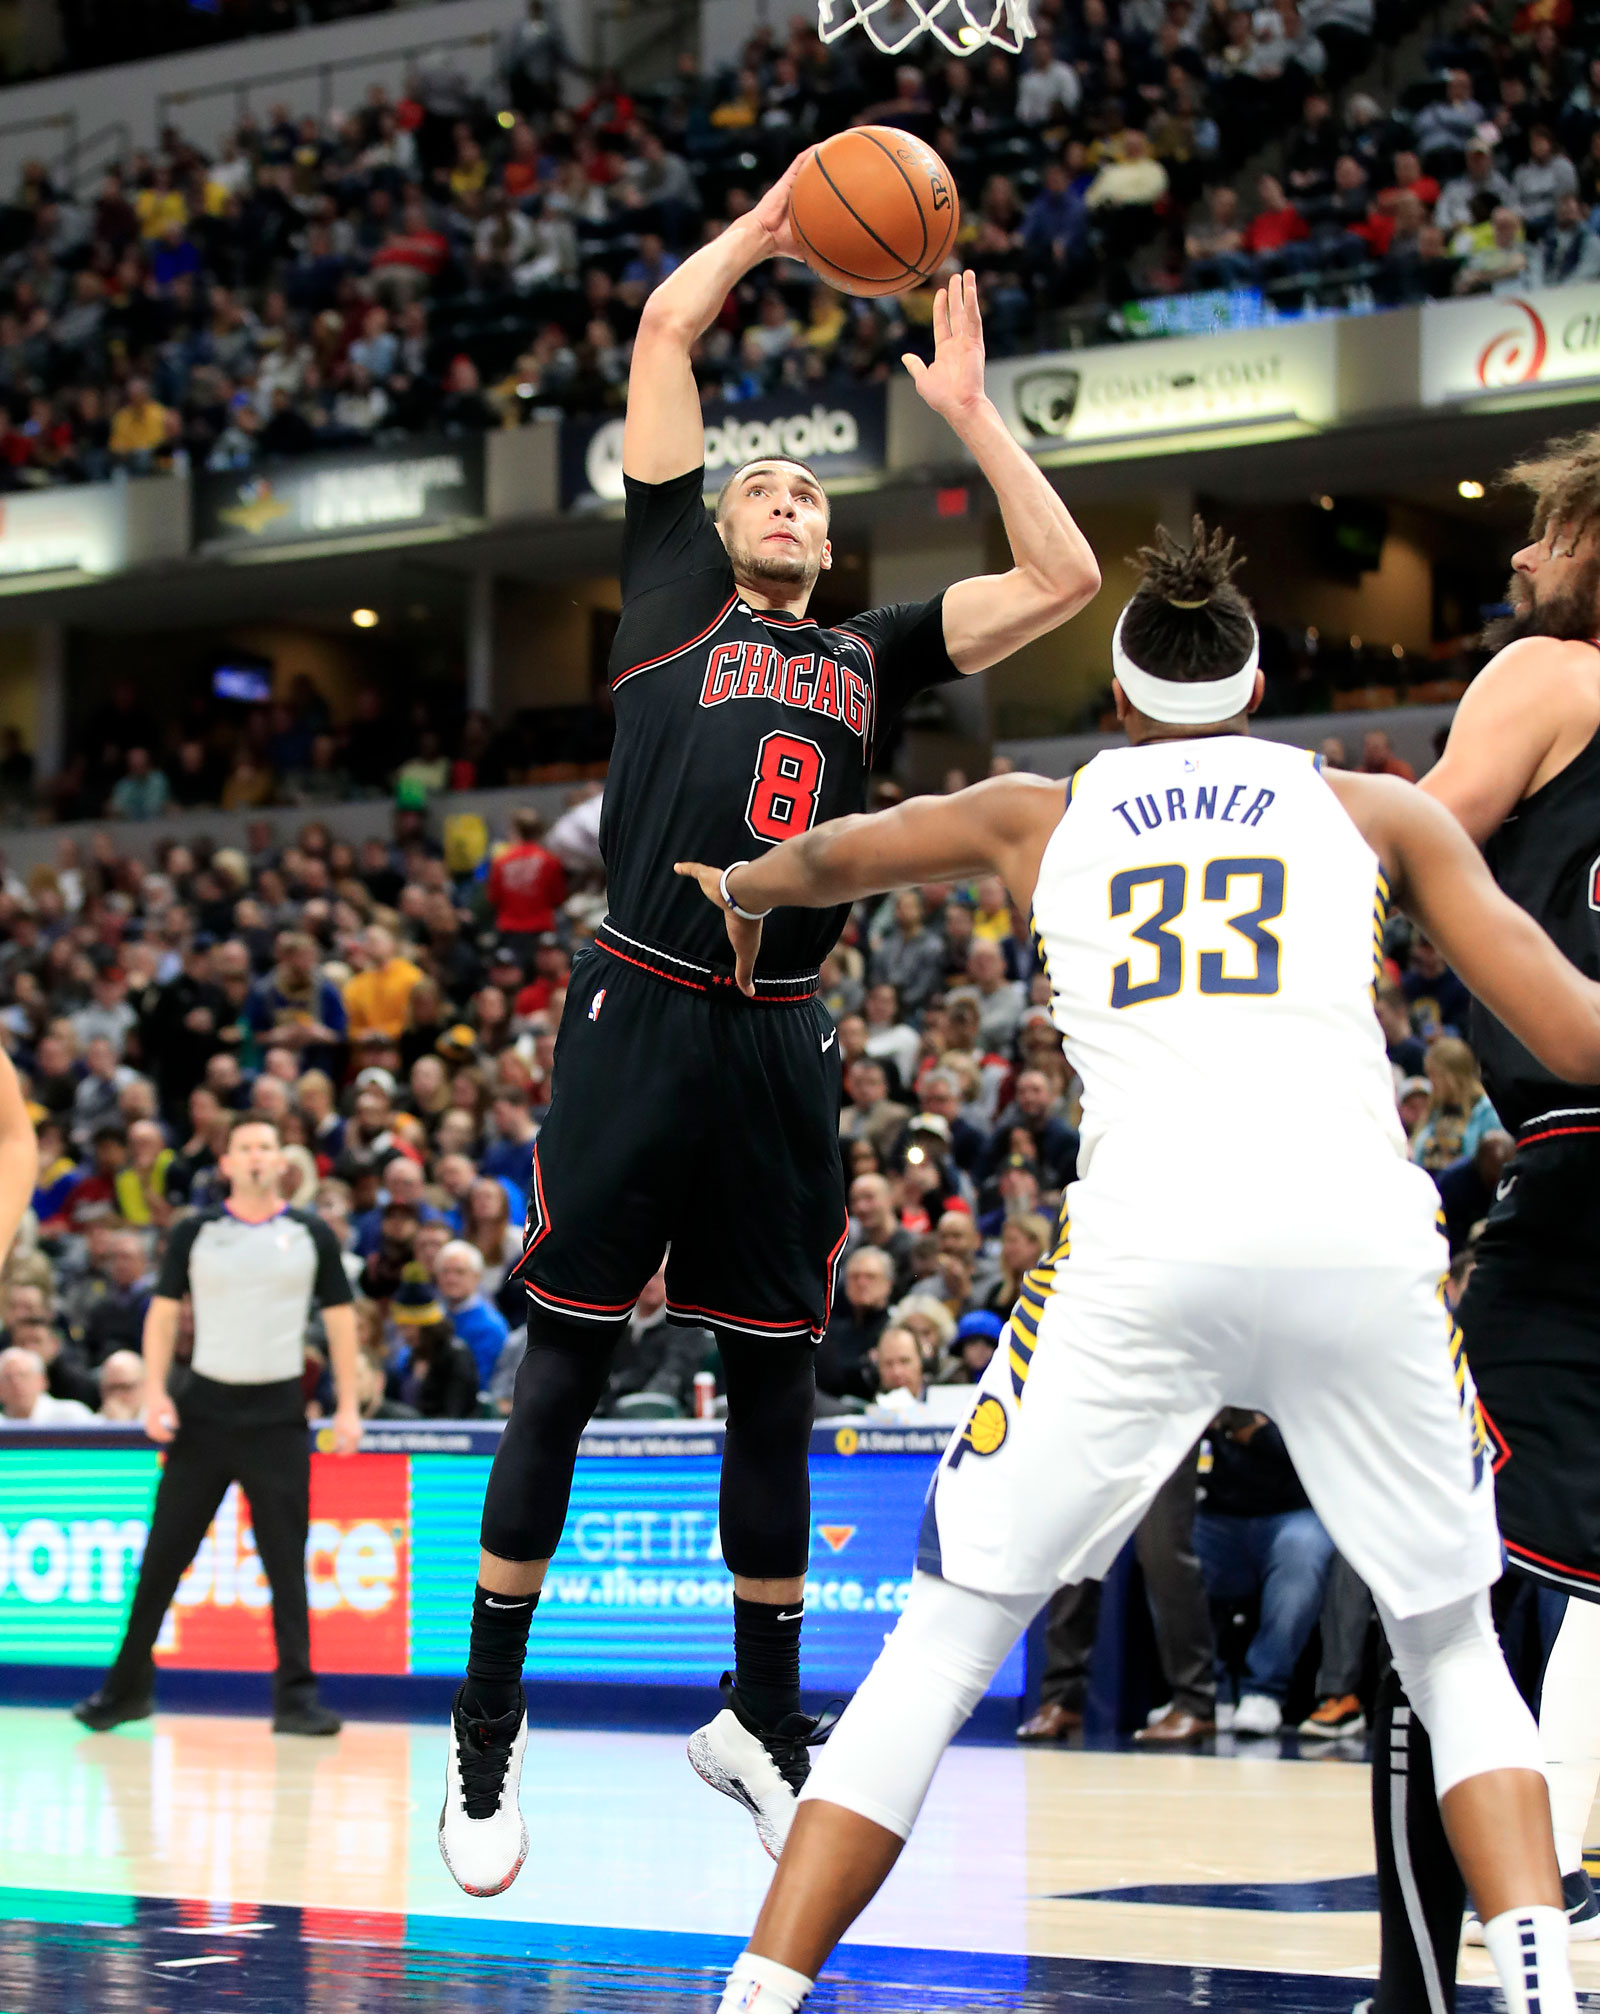 Zach LaVine #8 of the Chicago Bulls shoots the ball against the Indiana Pacers at Bankers Life Fieldhouse on March 05, 2019 in Indianapolis, Indiana.